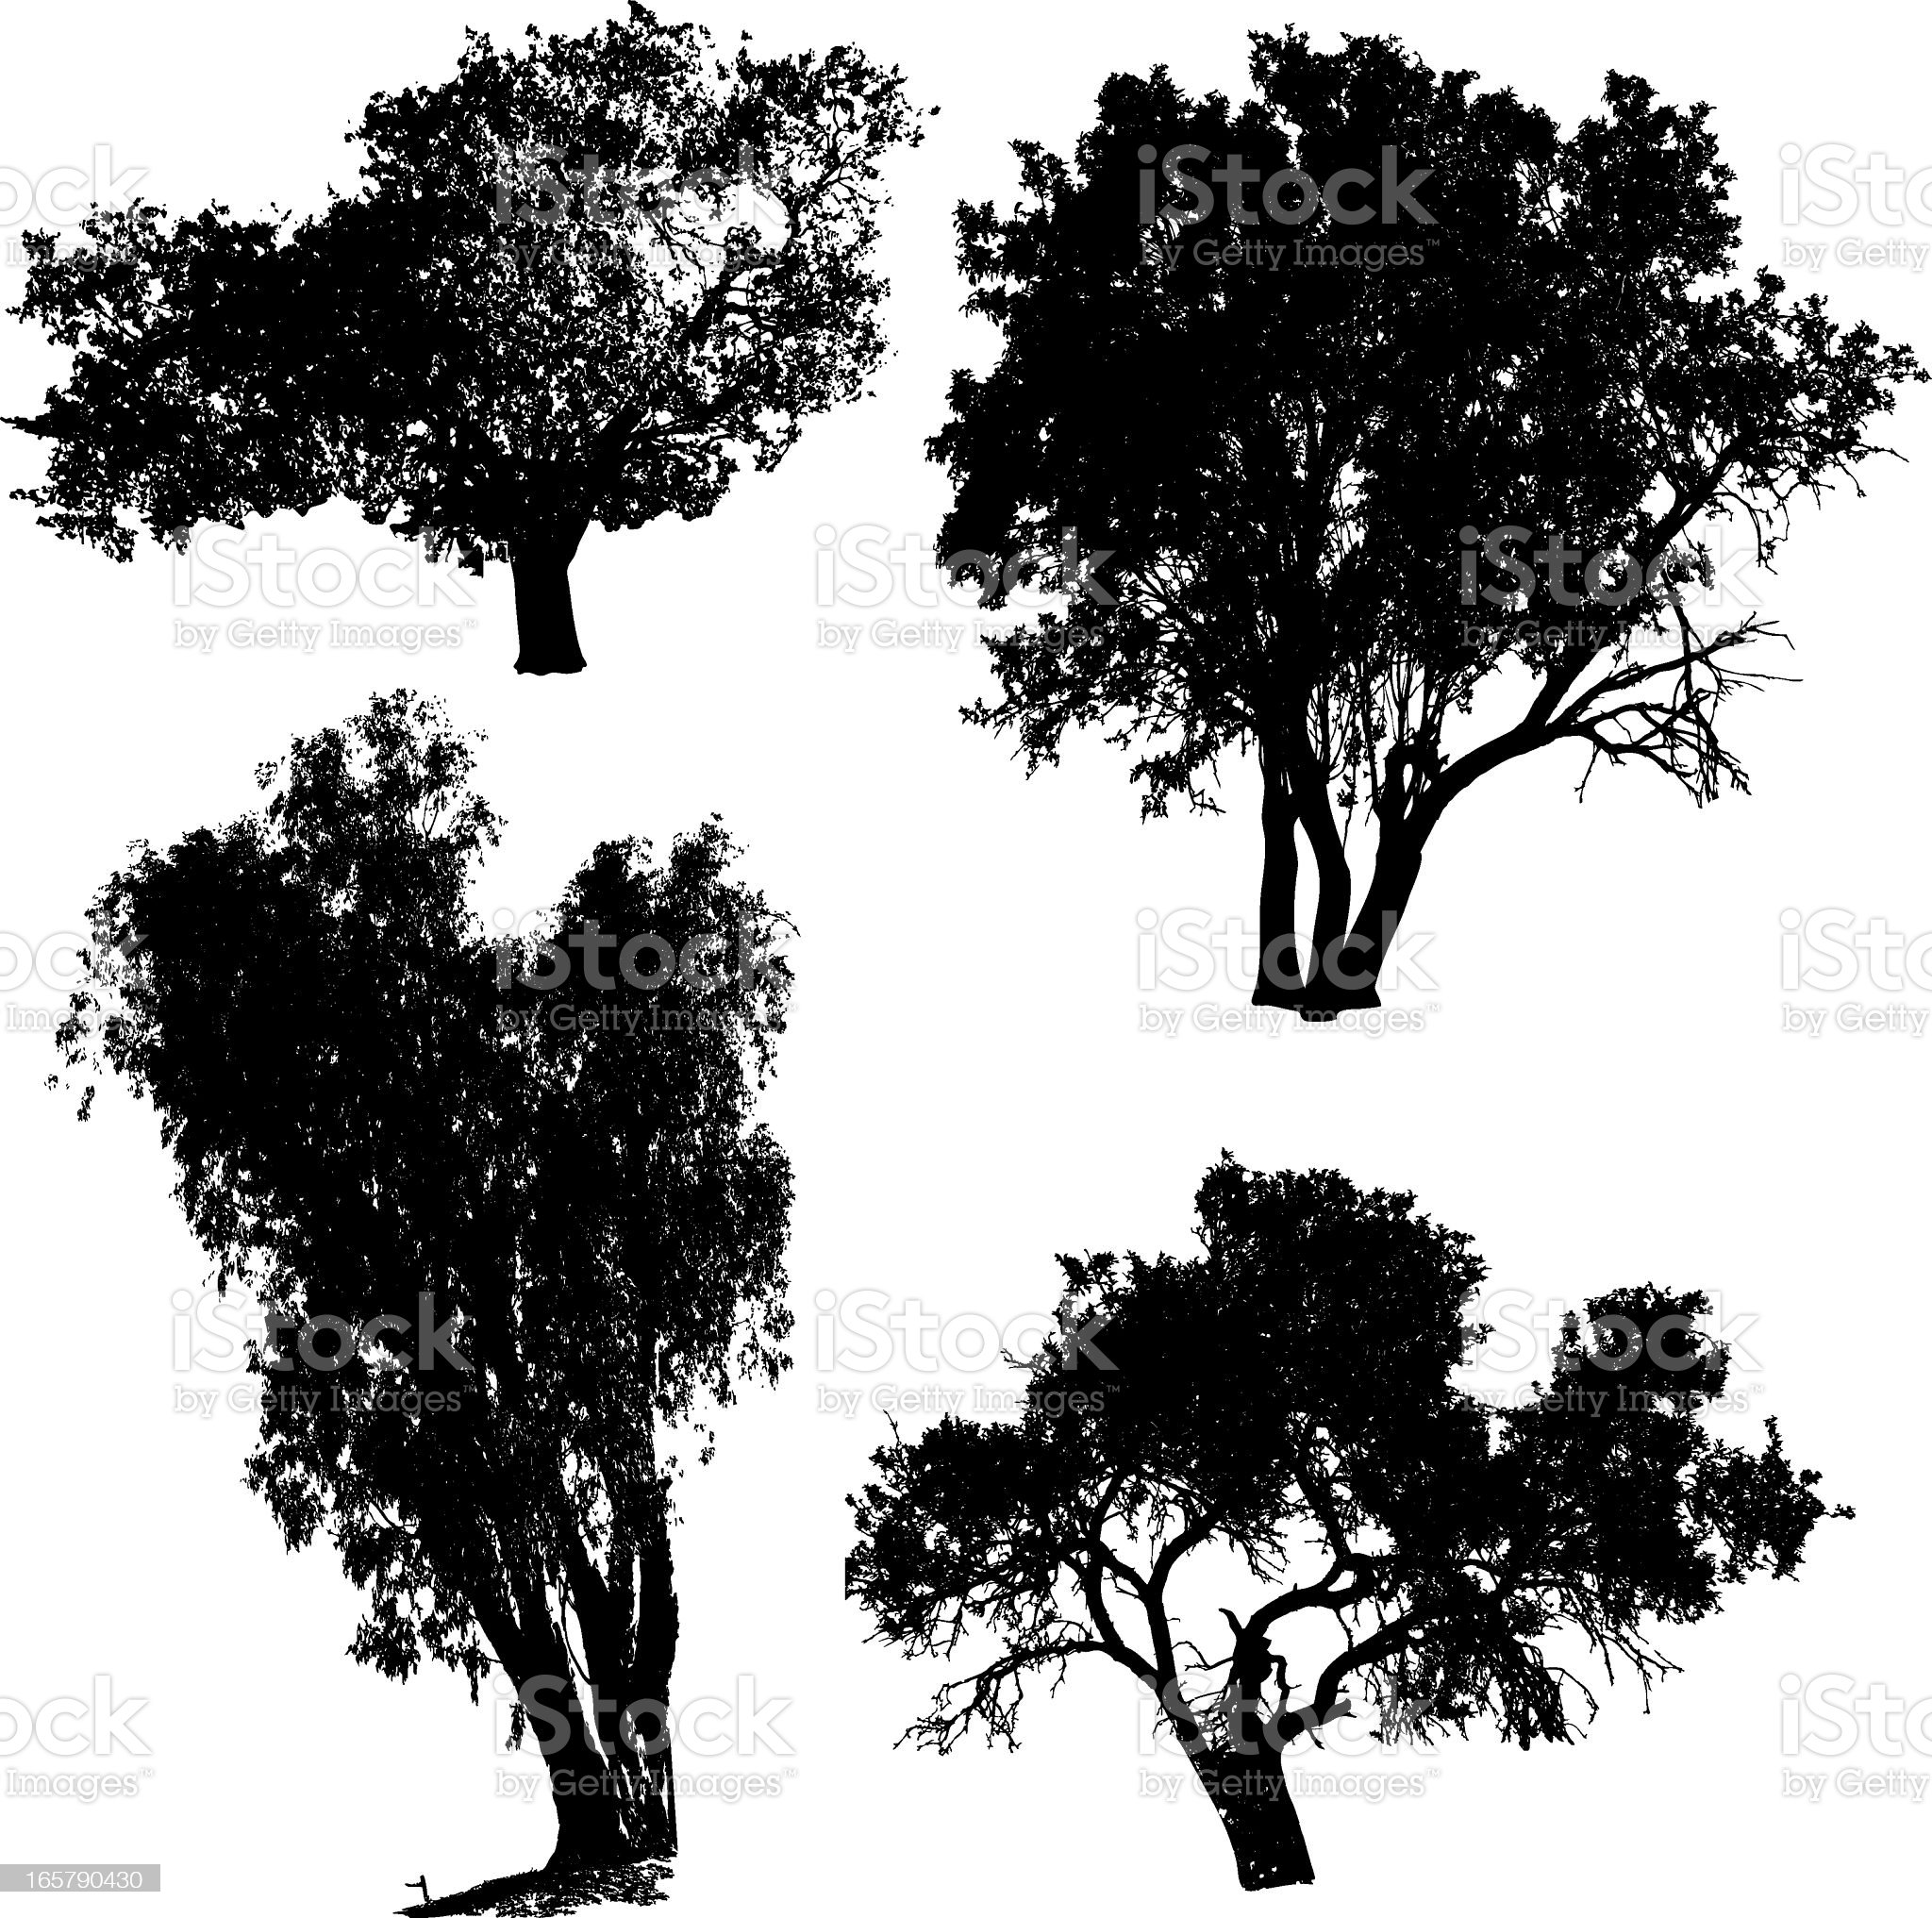 Set of silhouetted black tree images on white royalty-free stock vector art